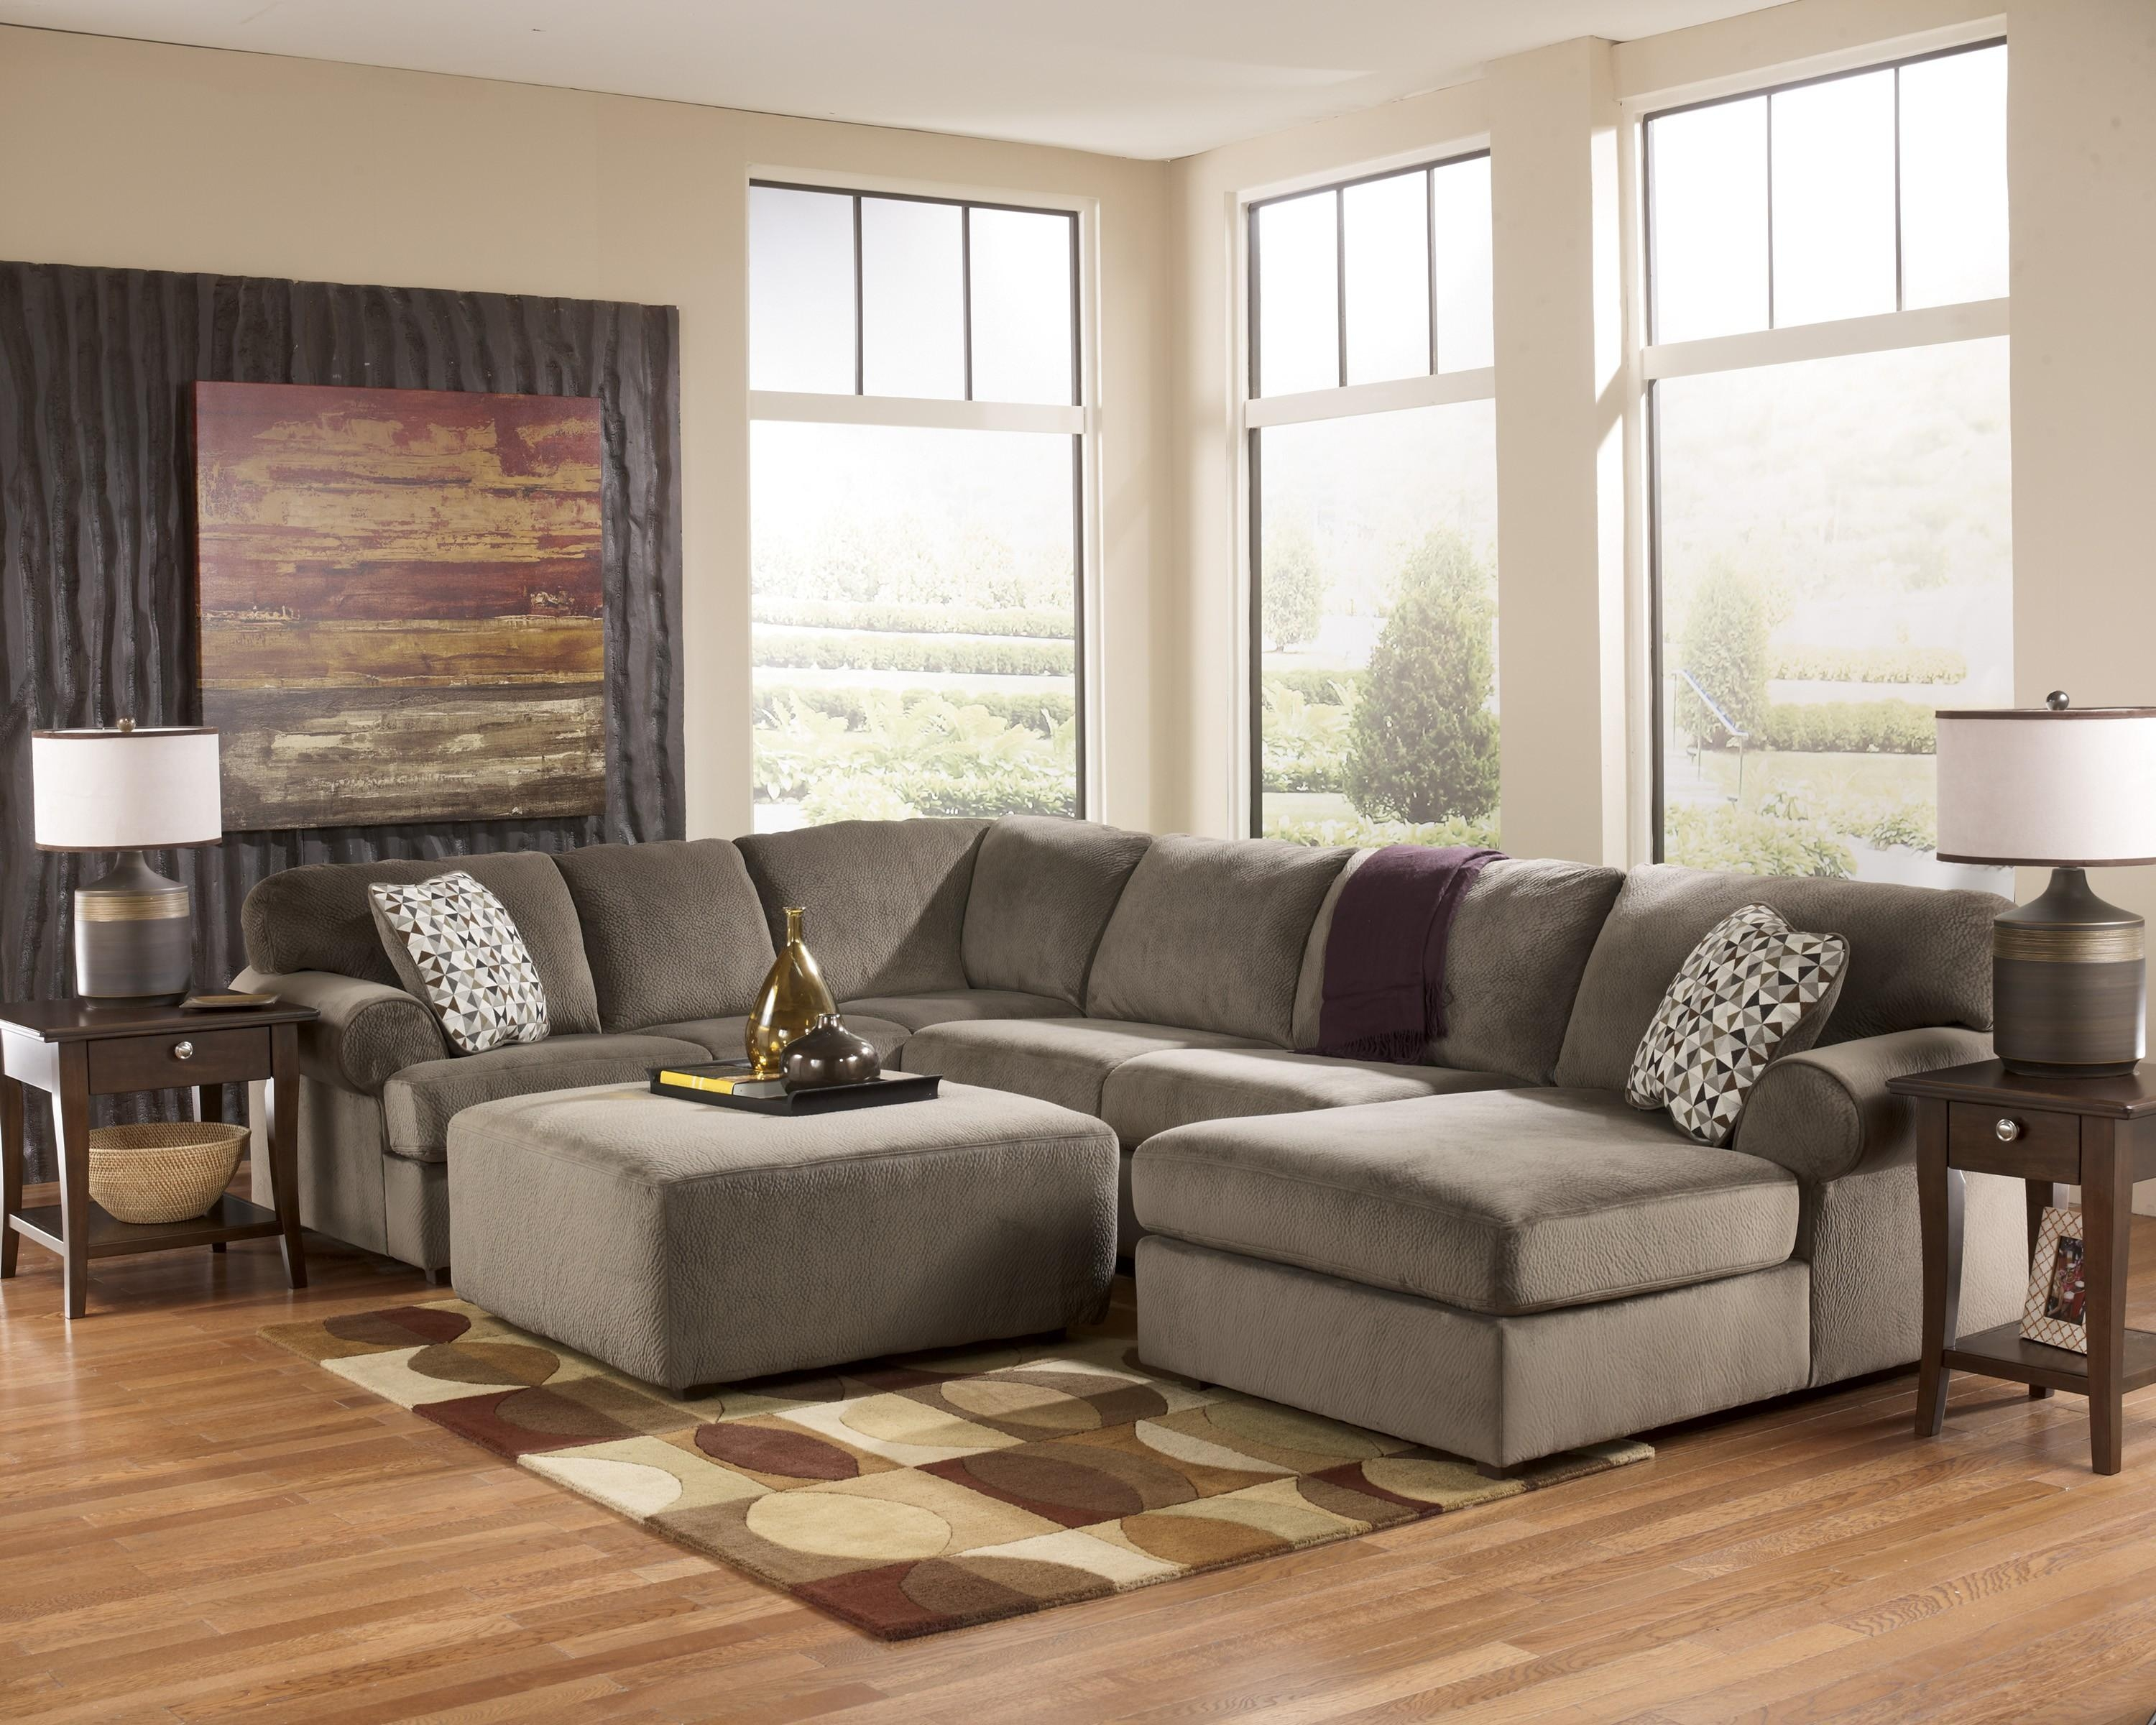 Interior: Luxury Oversized Sectional Sofa For Awesome Living Room Throughout Window Sofas (Image 10 of 20)